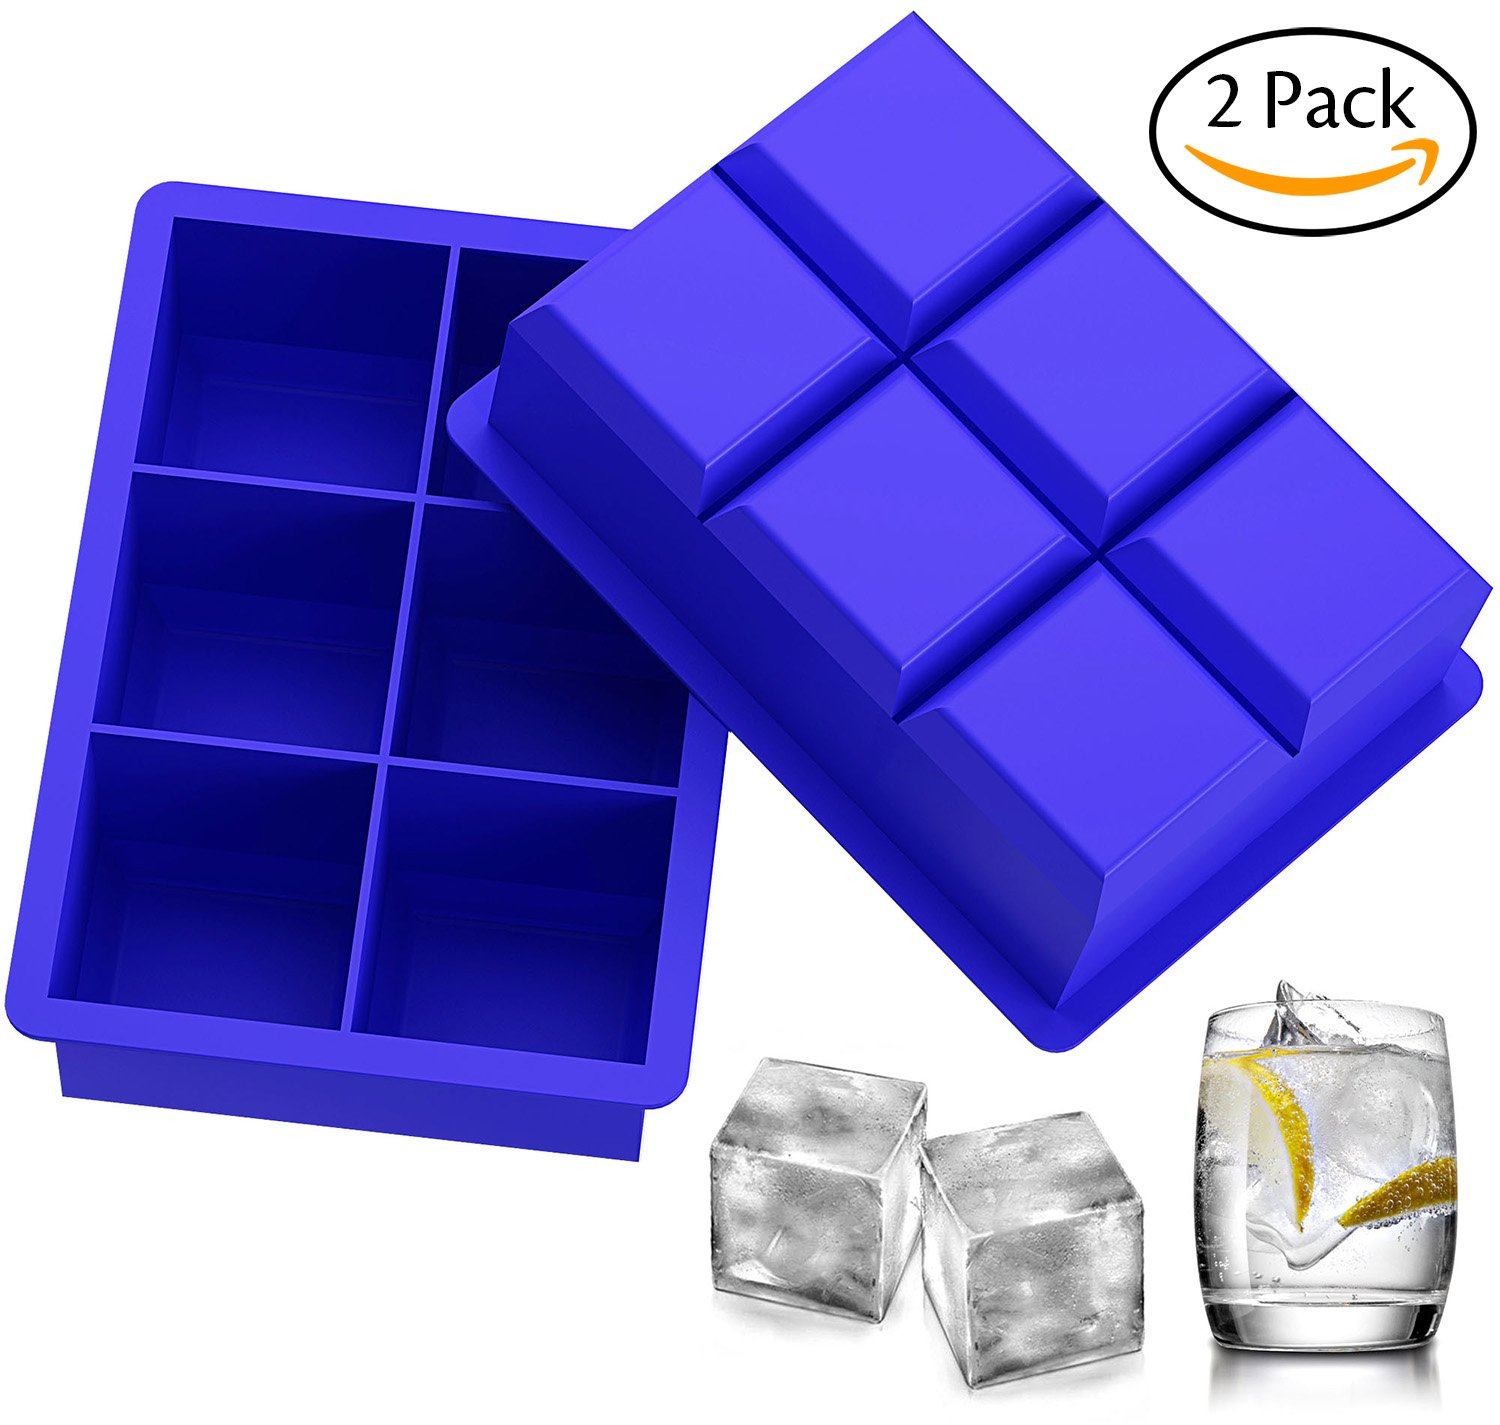 Ozera 2 Pack Silicone Ice Cube Tray Molds Candy Mold Cake Mold Chocolate Mold, 6 Cavity, Blue